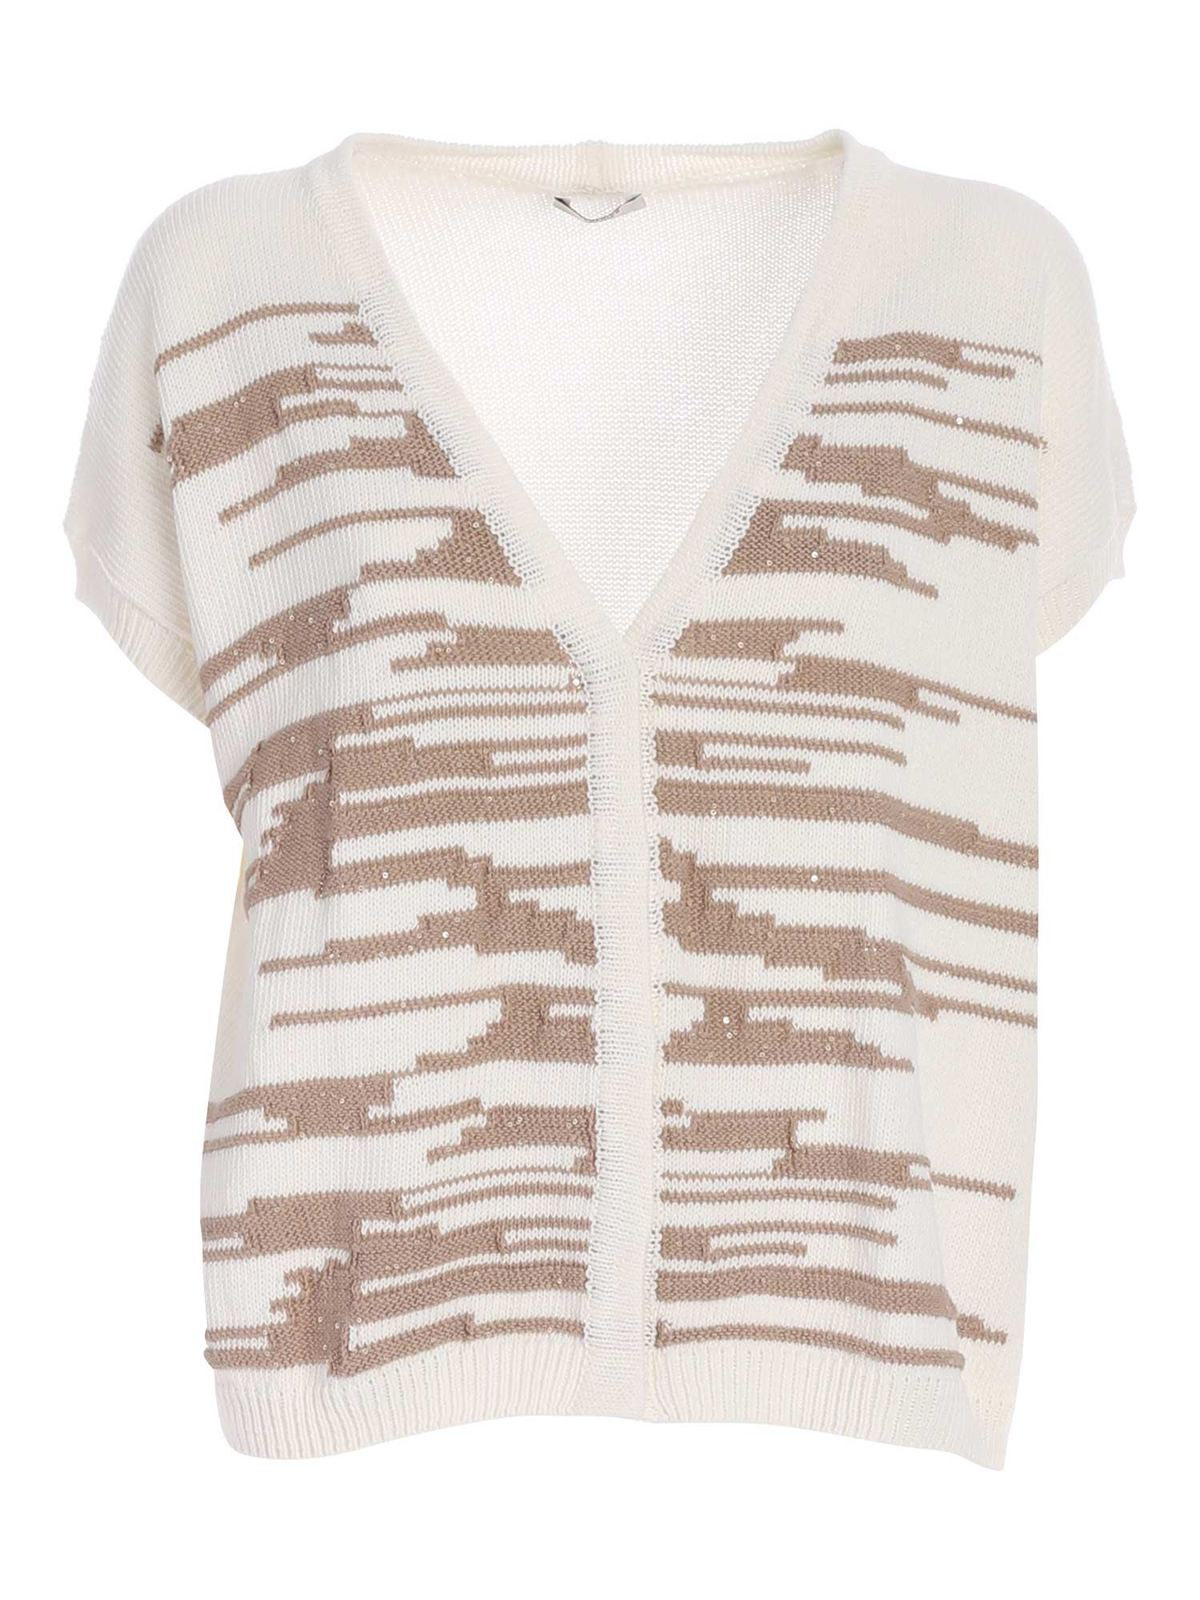 Peserico SHORT SLEEVES CARDIGAN IN WHITE AND BROWN